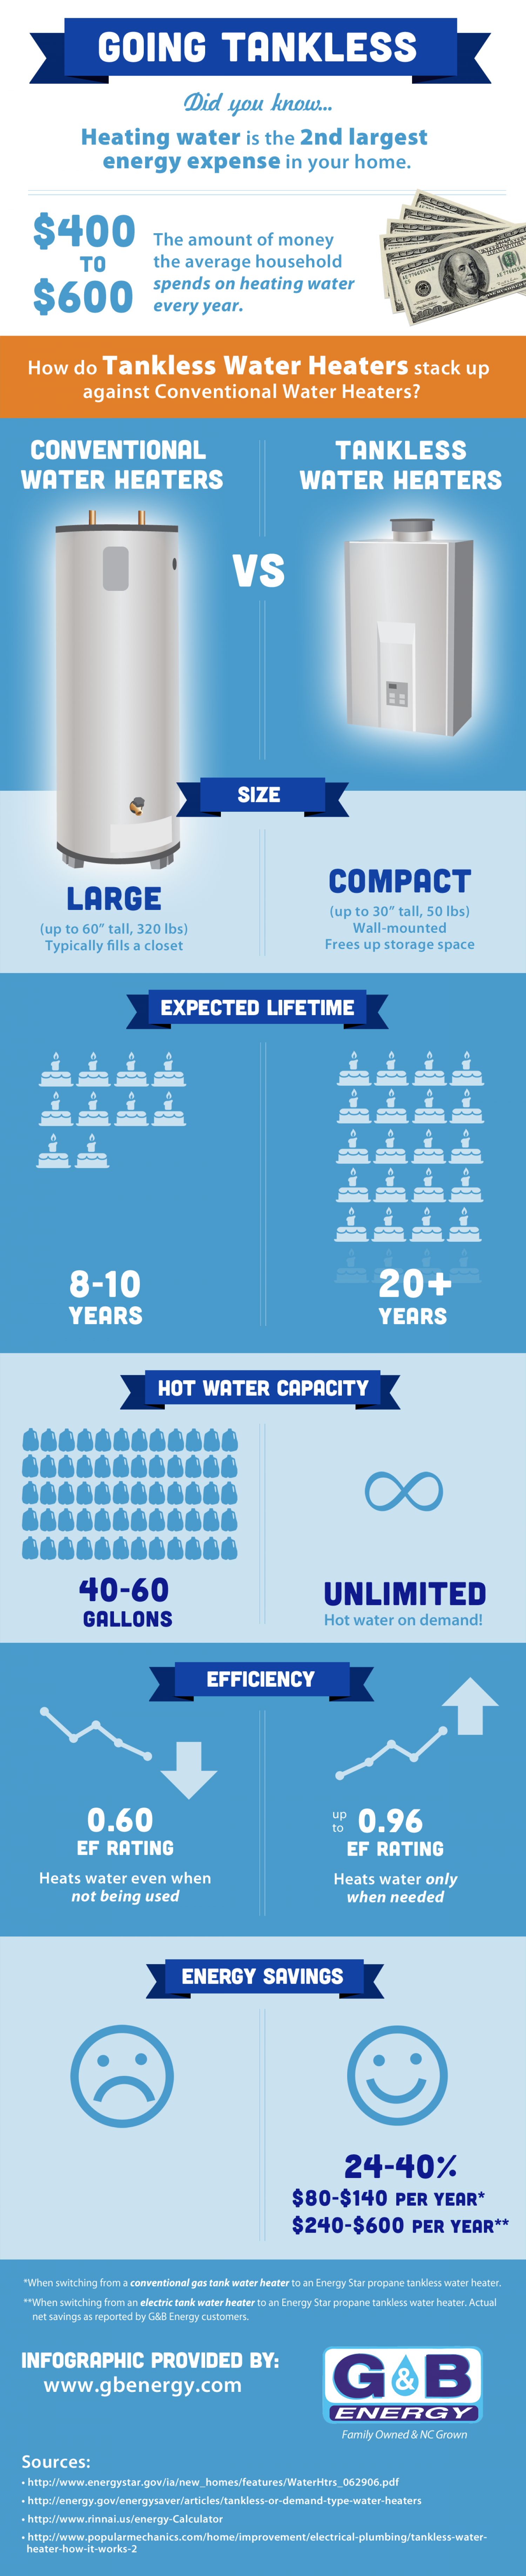 Tankless vs. Conventional Water Heaters Infographic